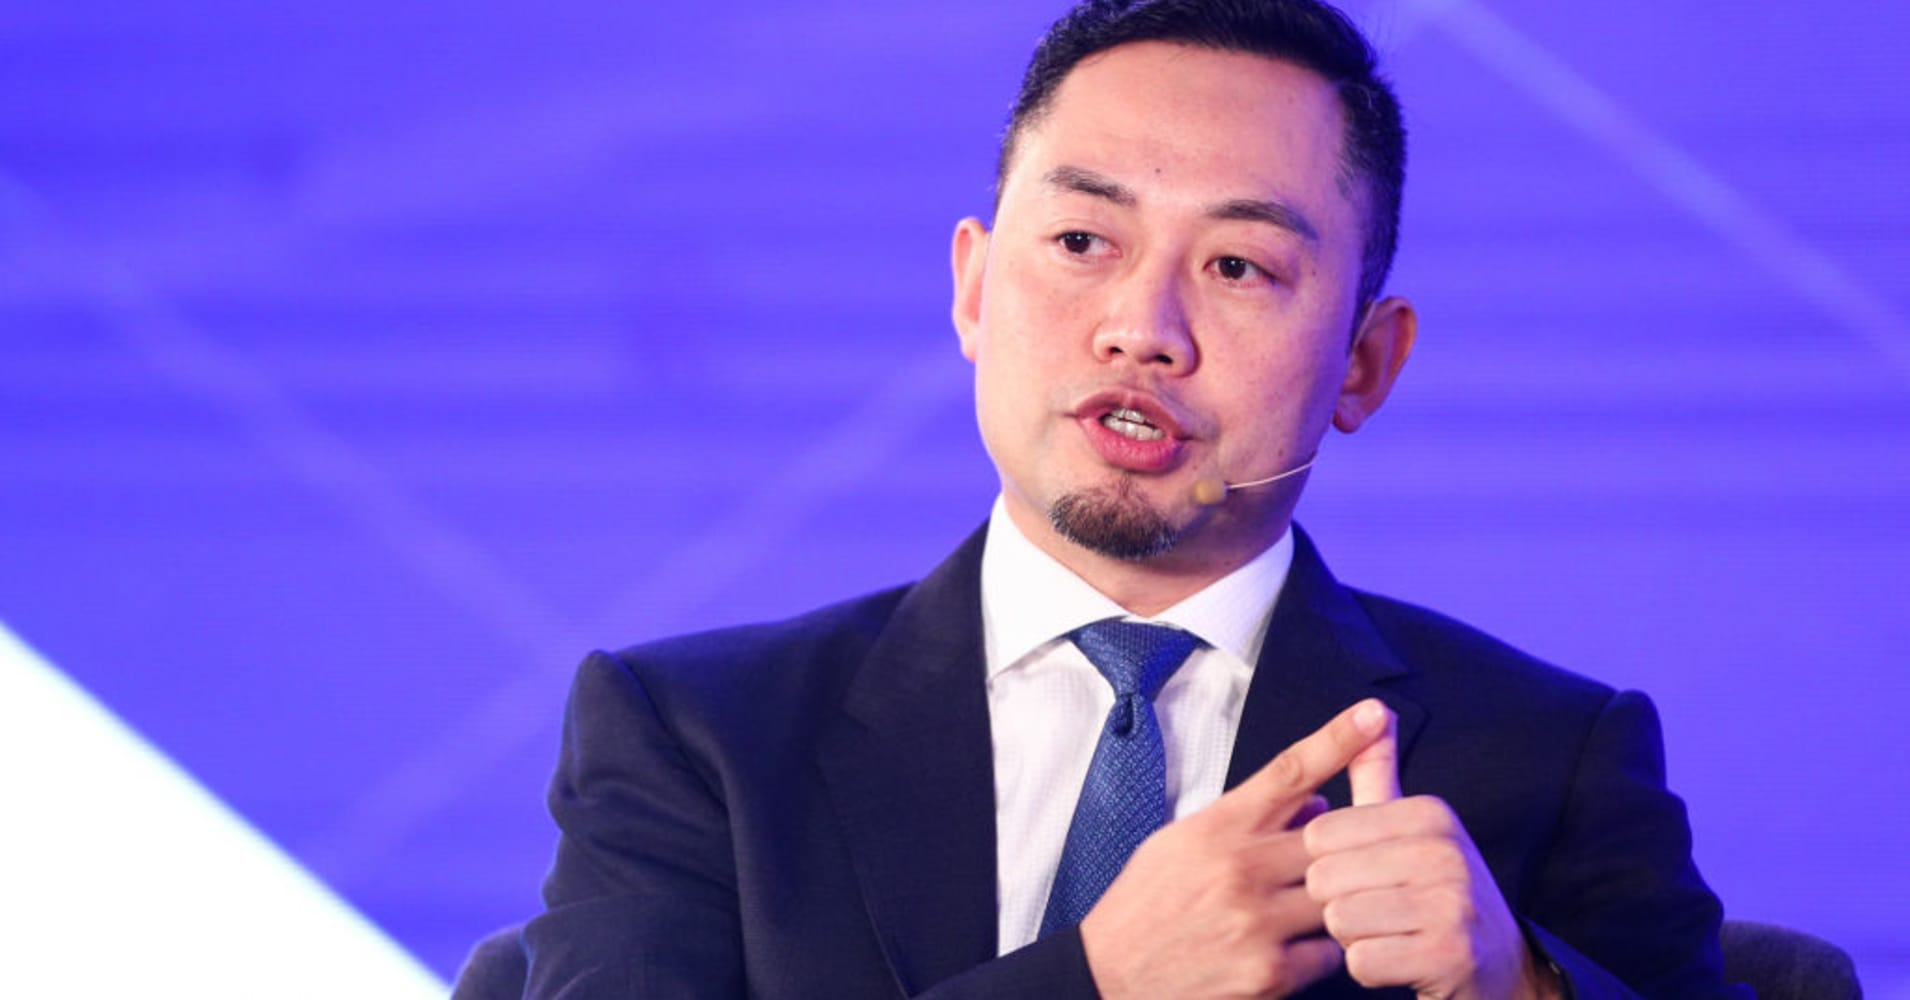 Huawei is optimistic about the impact of A.I. on society